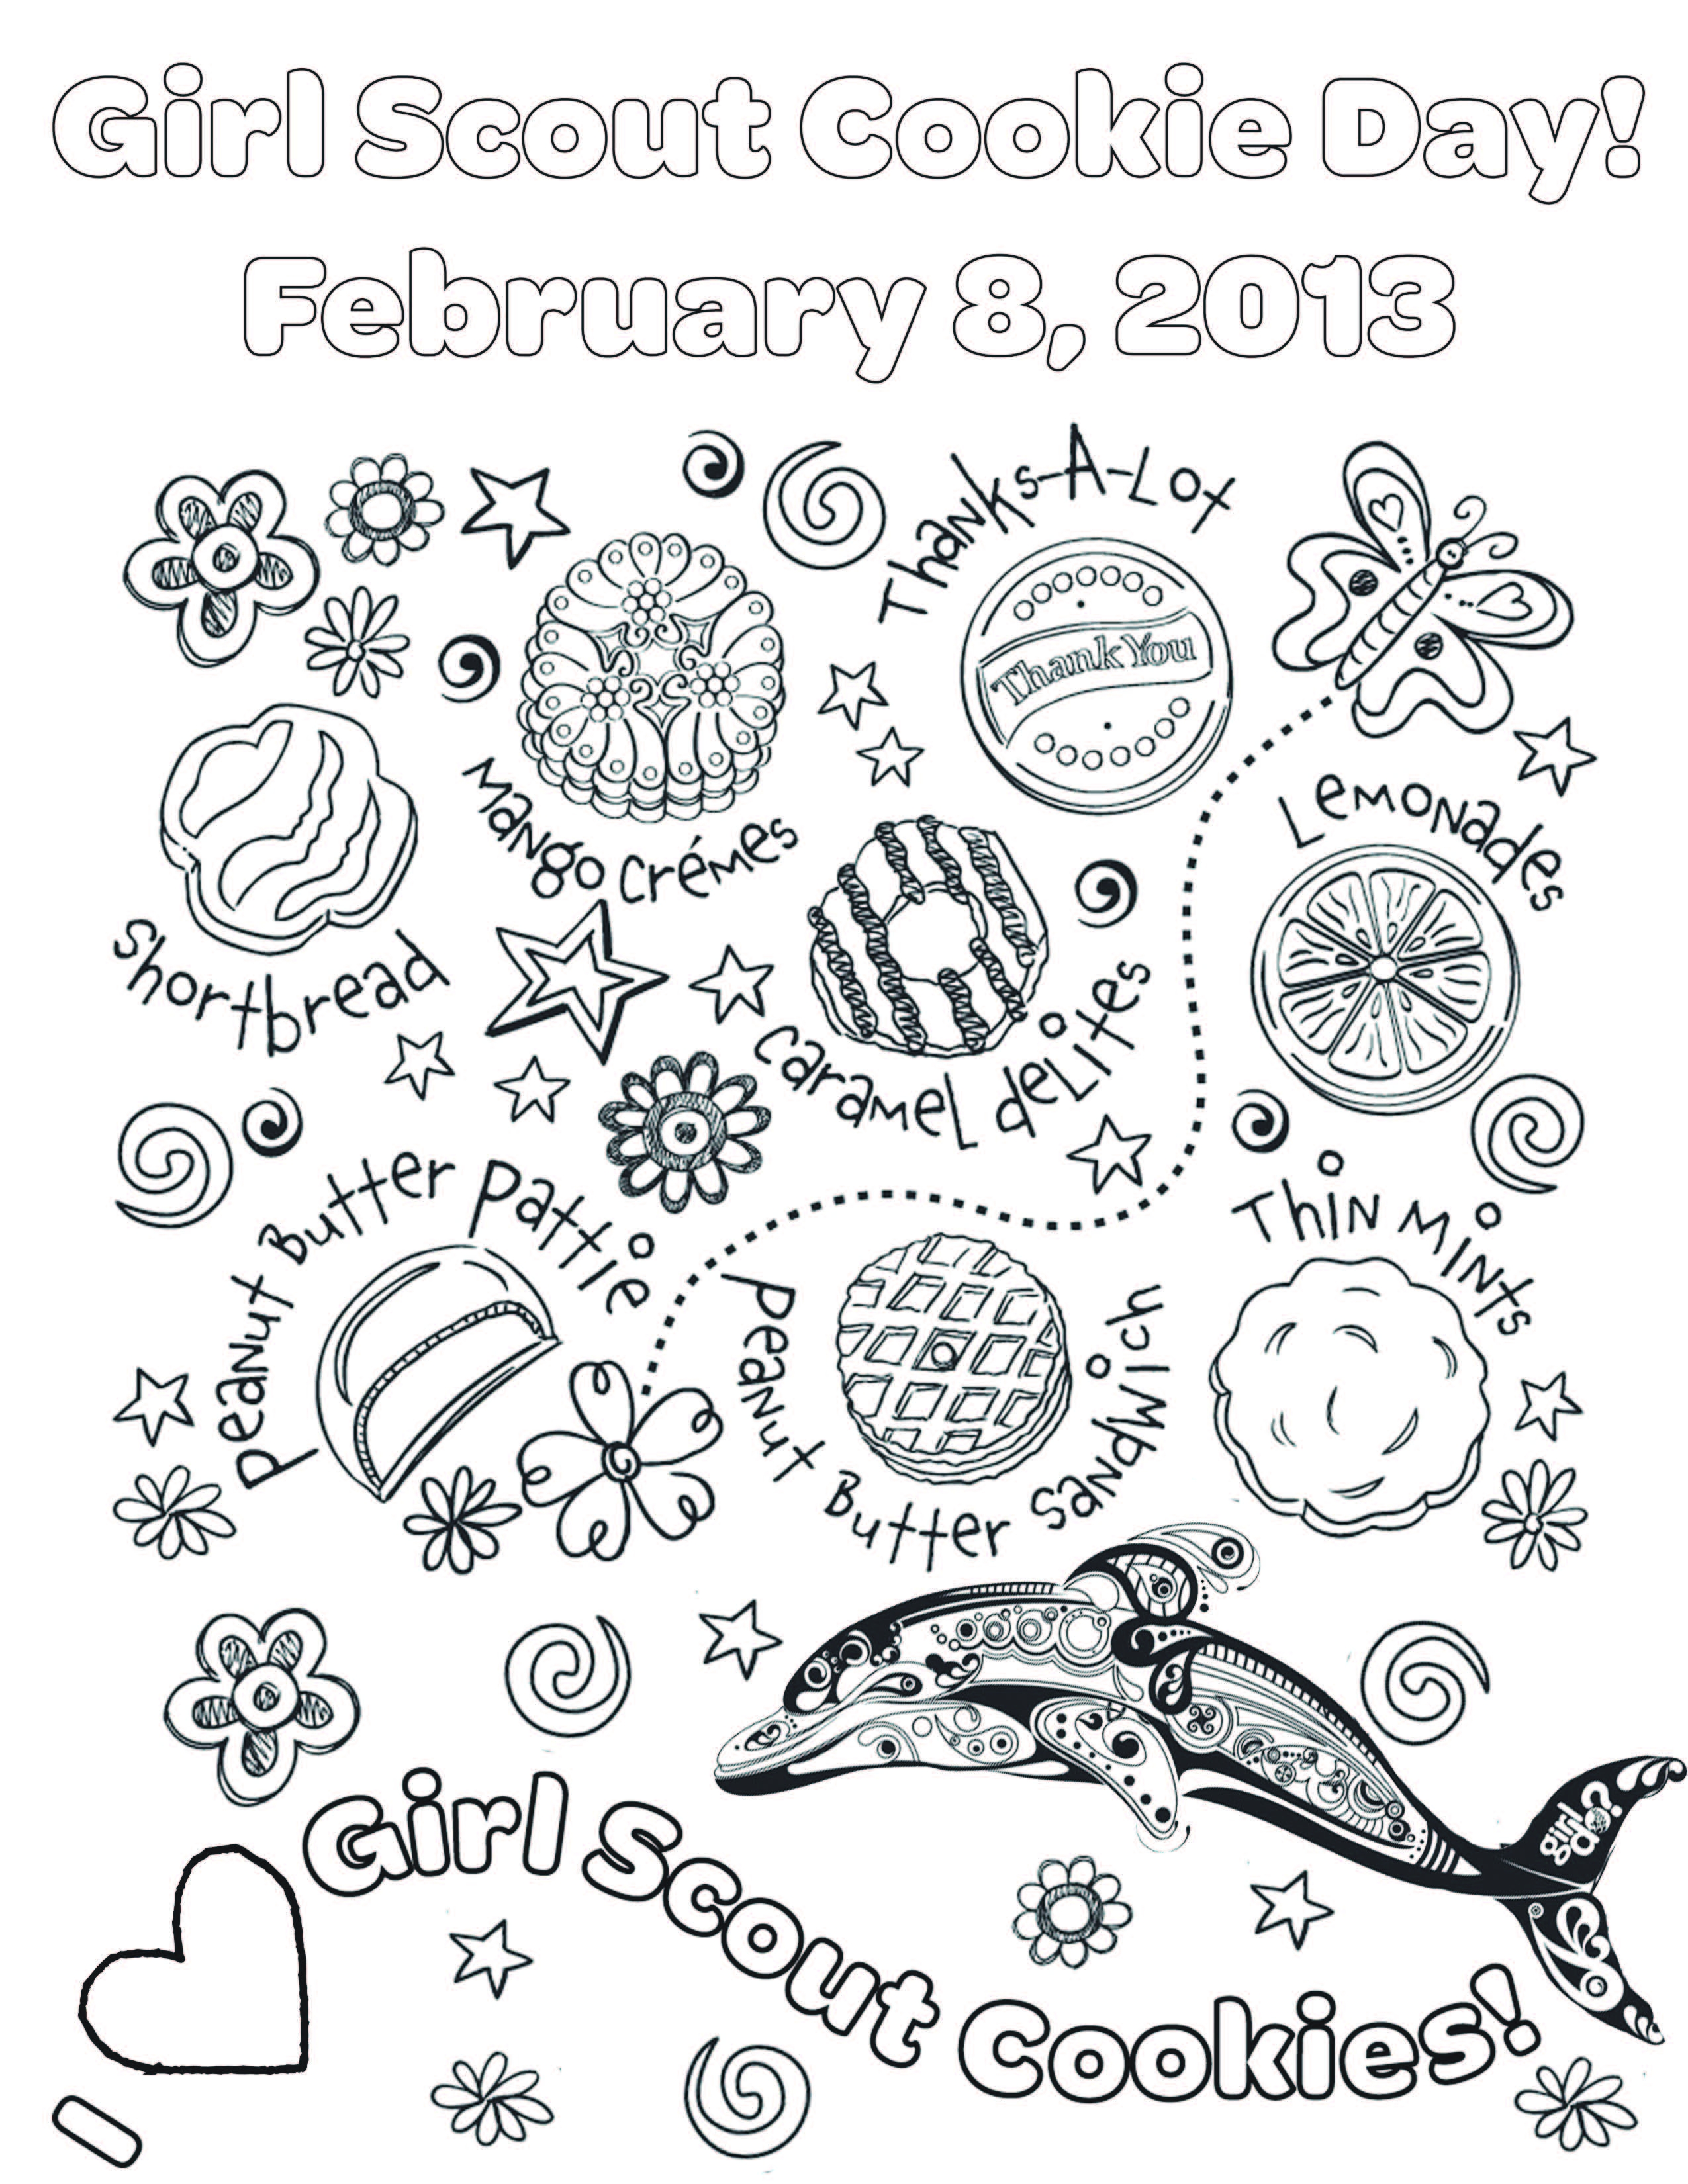 girl scout cookie coloring pages - national girl scout cookie day on feb 8th